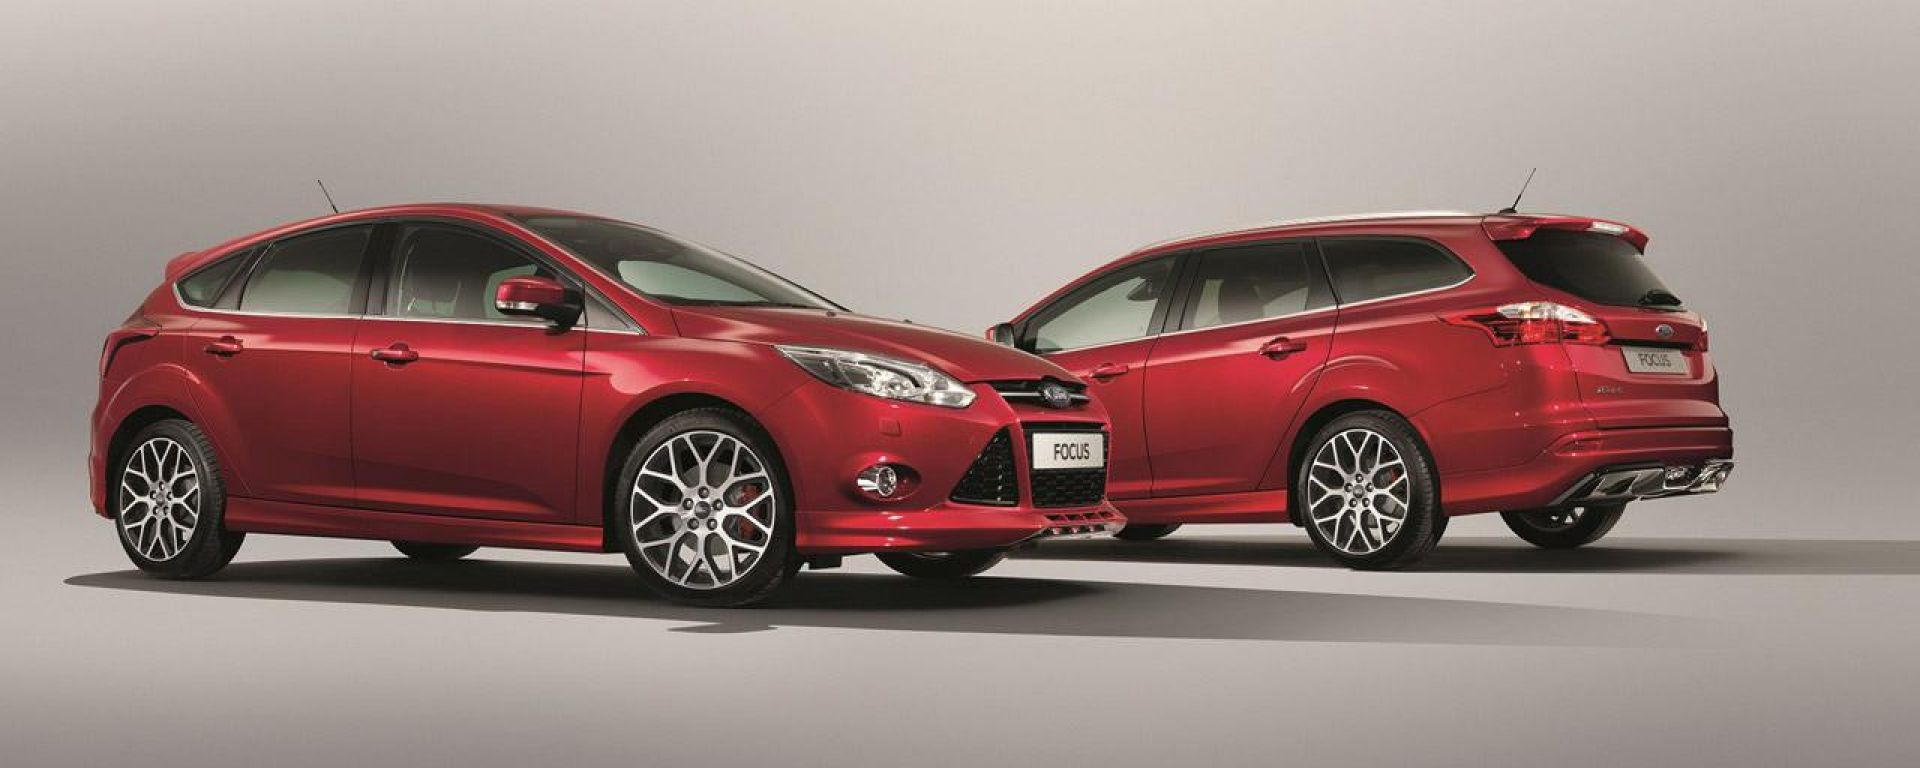 Ford Focus Individual